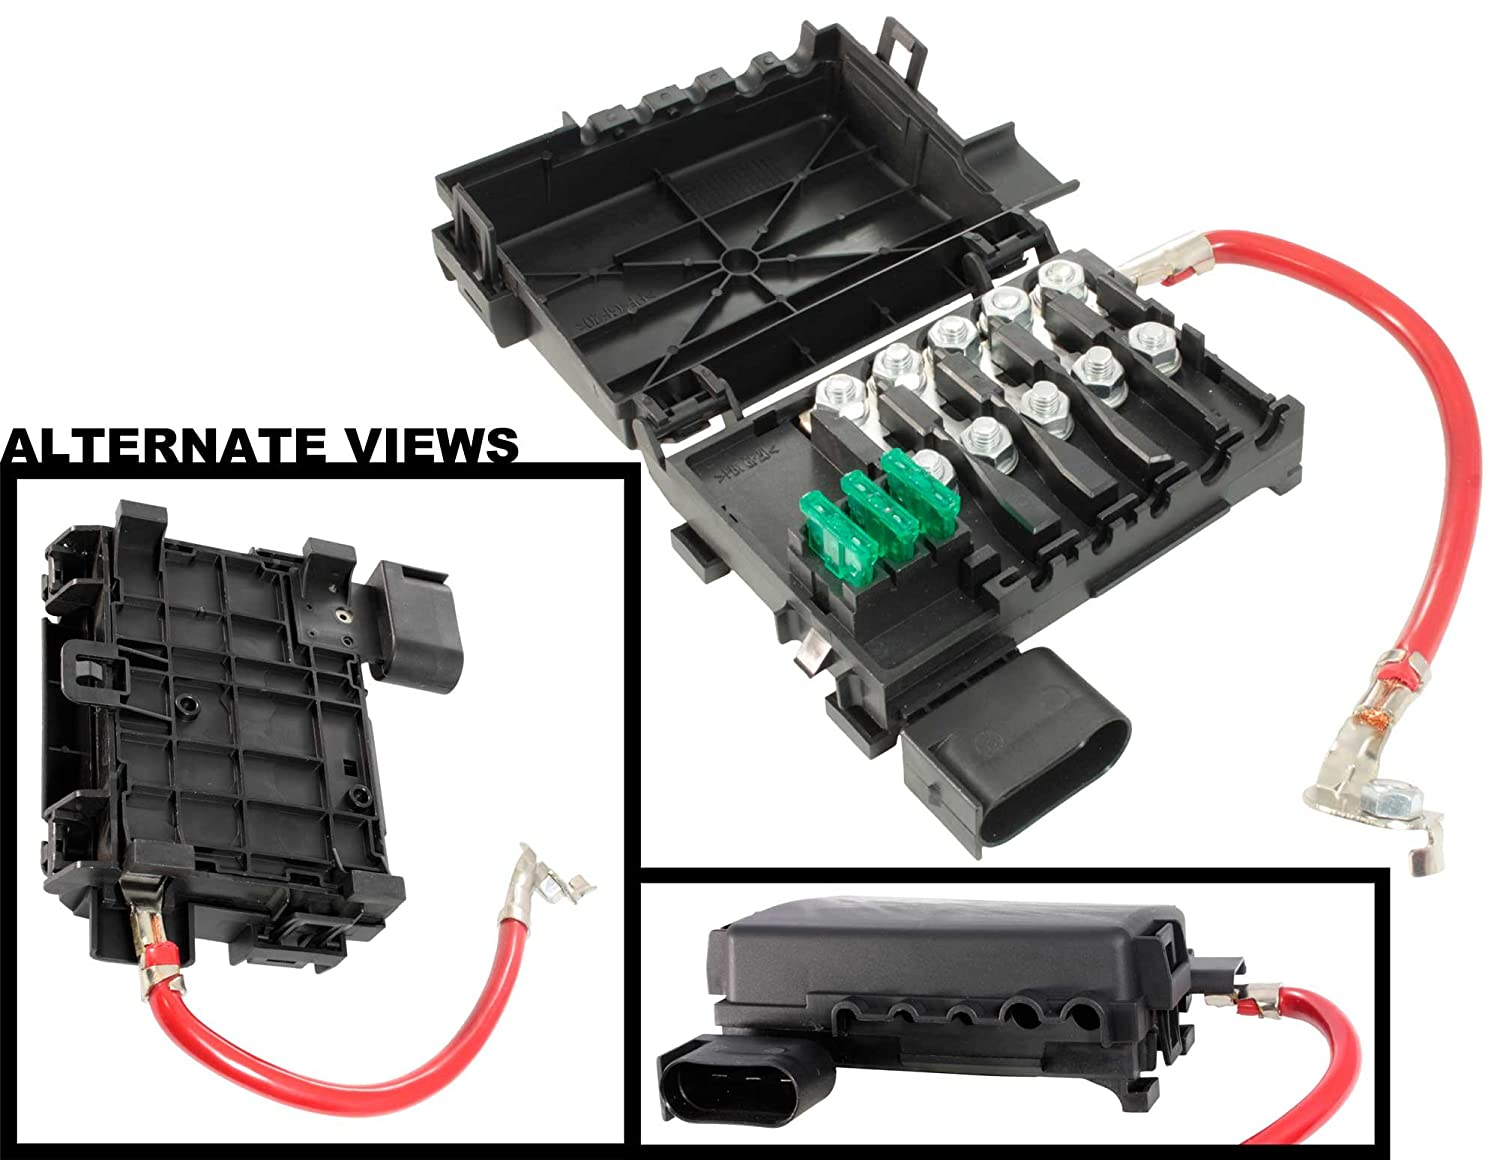 Amazon.com: APDTY 035791 Fuse Box Assembly Battery Mounted w/ New Fuses &  Fuse Links Fits Volkswagen 03-06 Beetle / 99-06 Golf / 01-05 Jetta (See ...